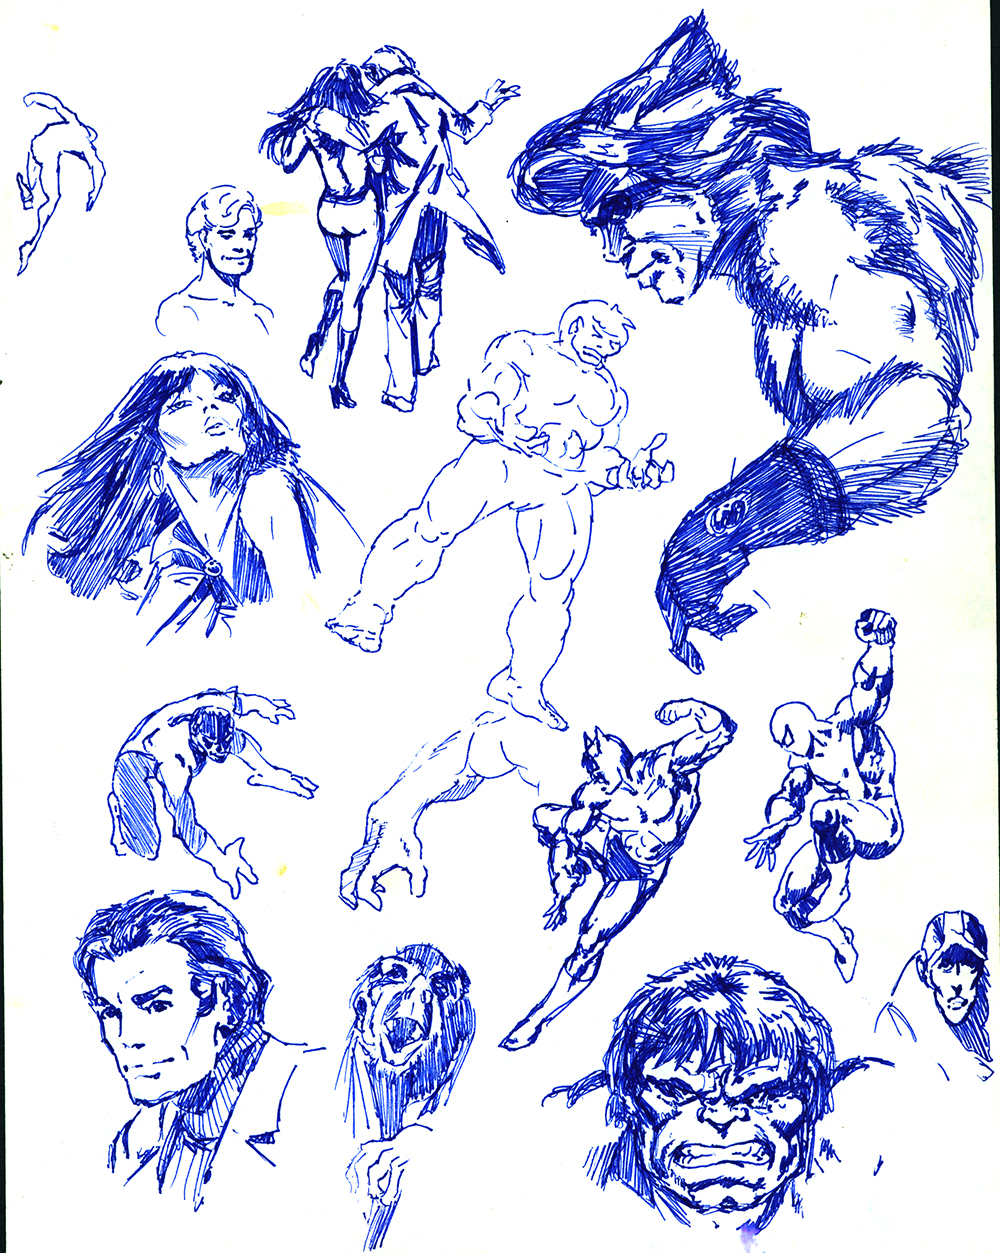 Sketches_early_misc_4 copy